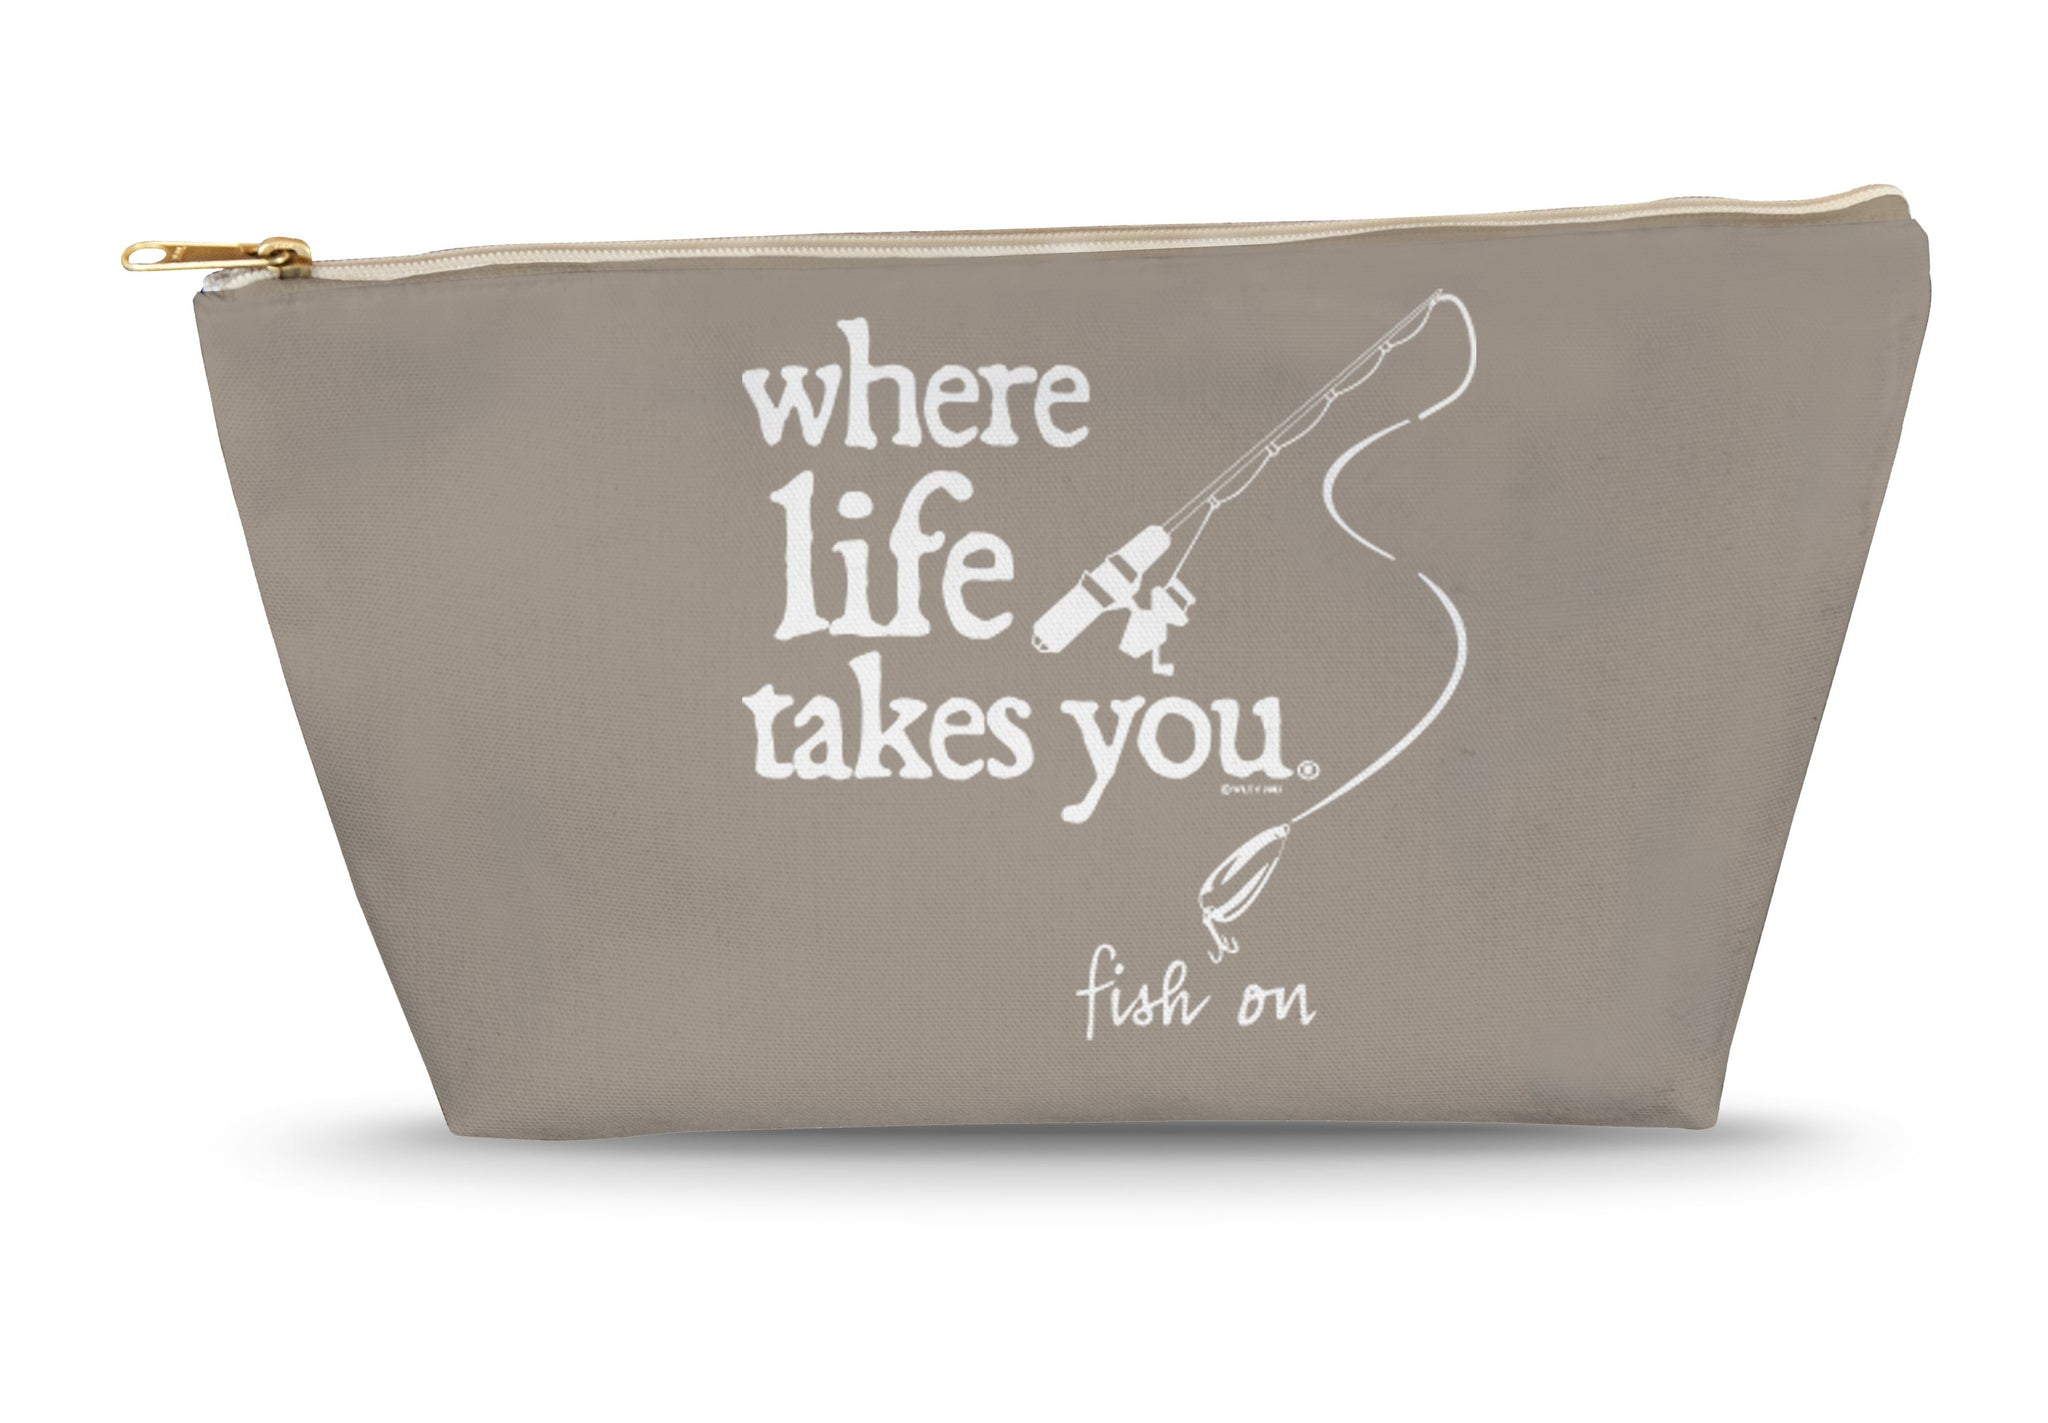 Fish On (Khaki) Large Accessory Bag